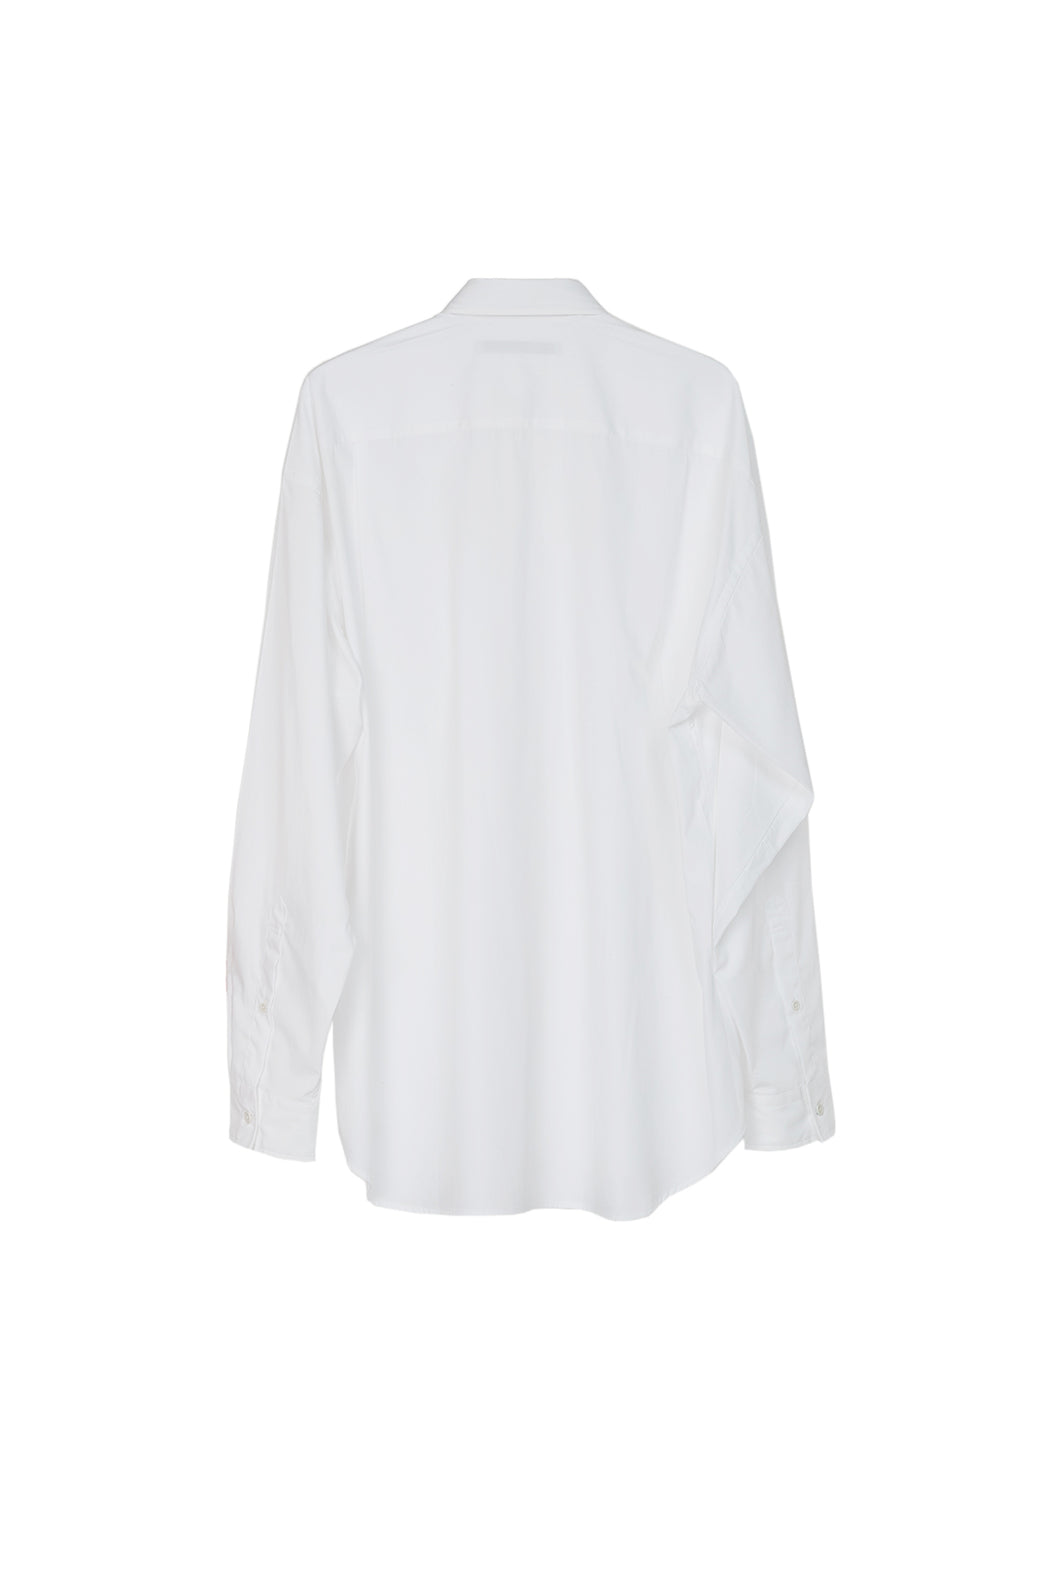 Roll Up Sleeve Shirt - White